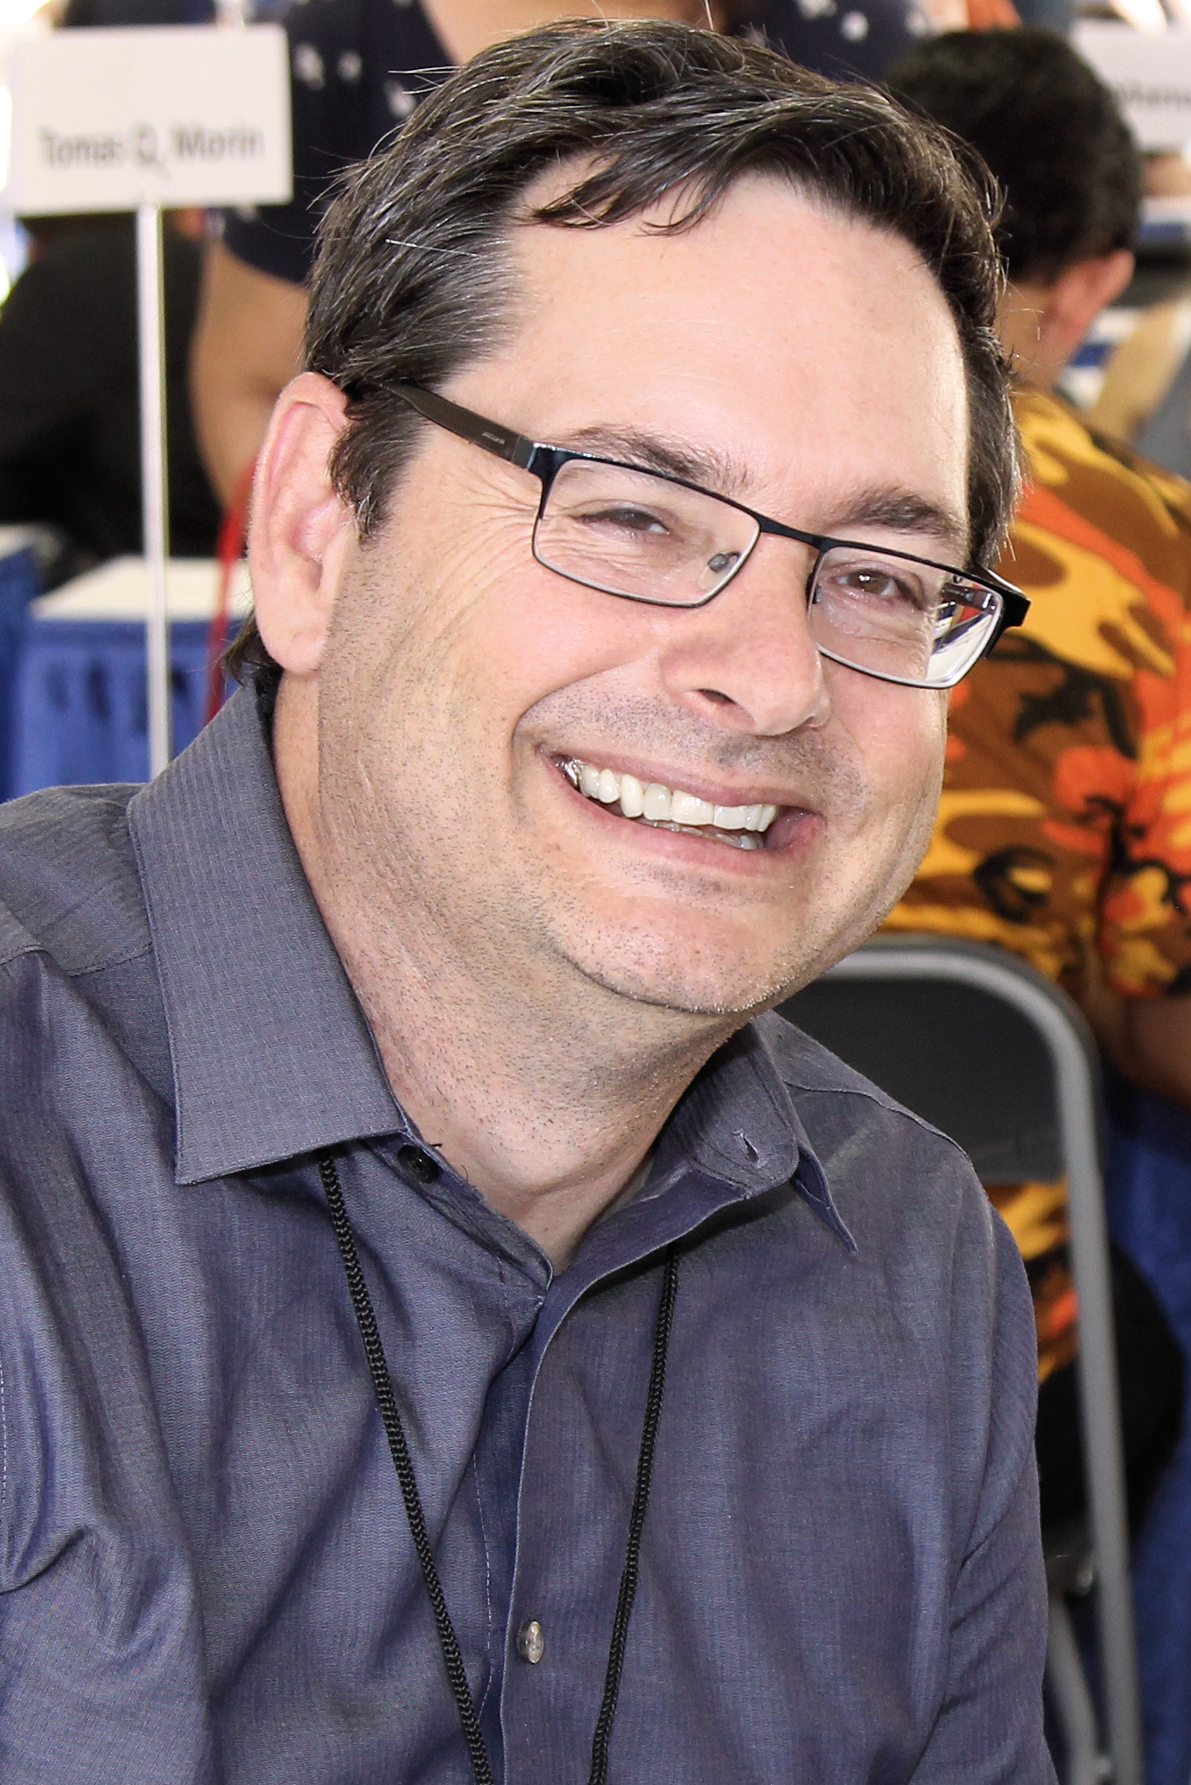 Gregory at the 2017 Texas Book Festival